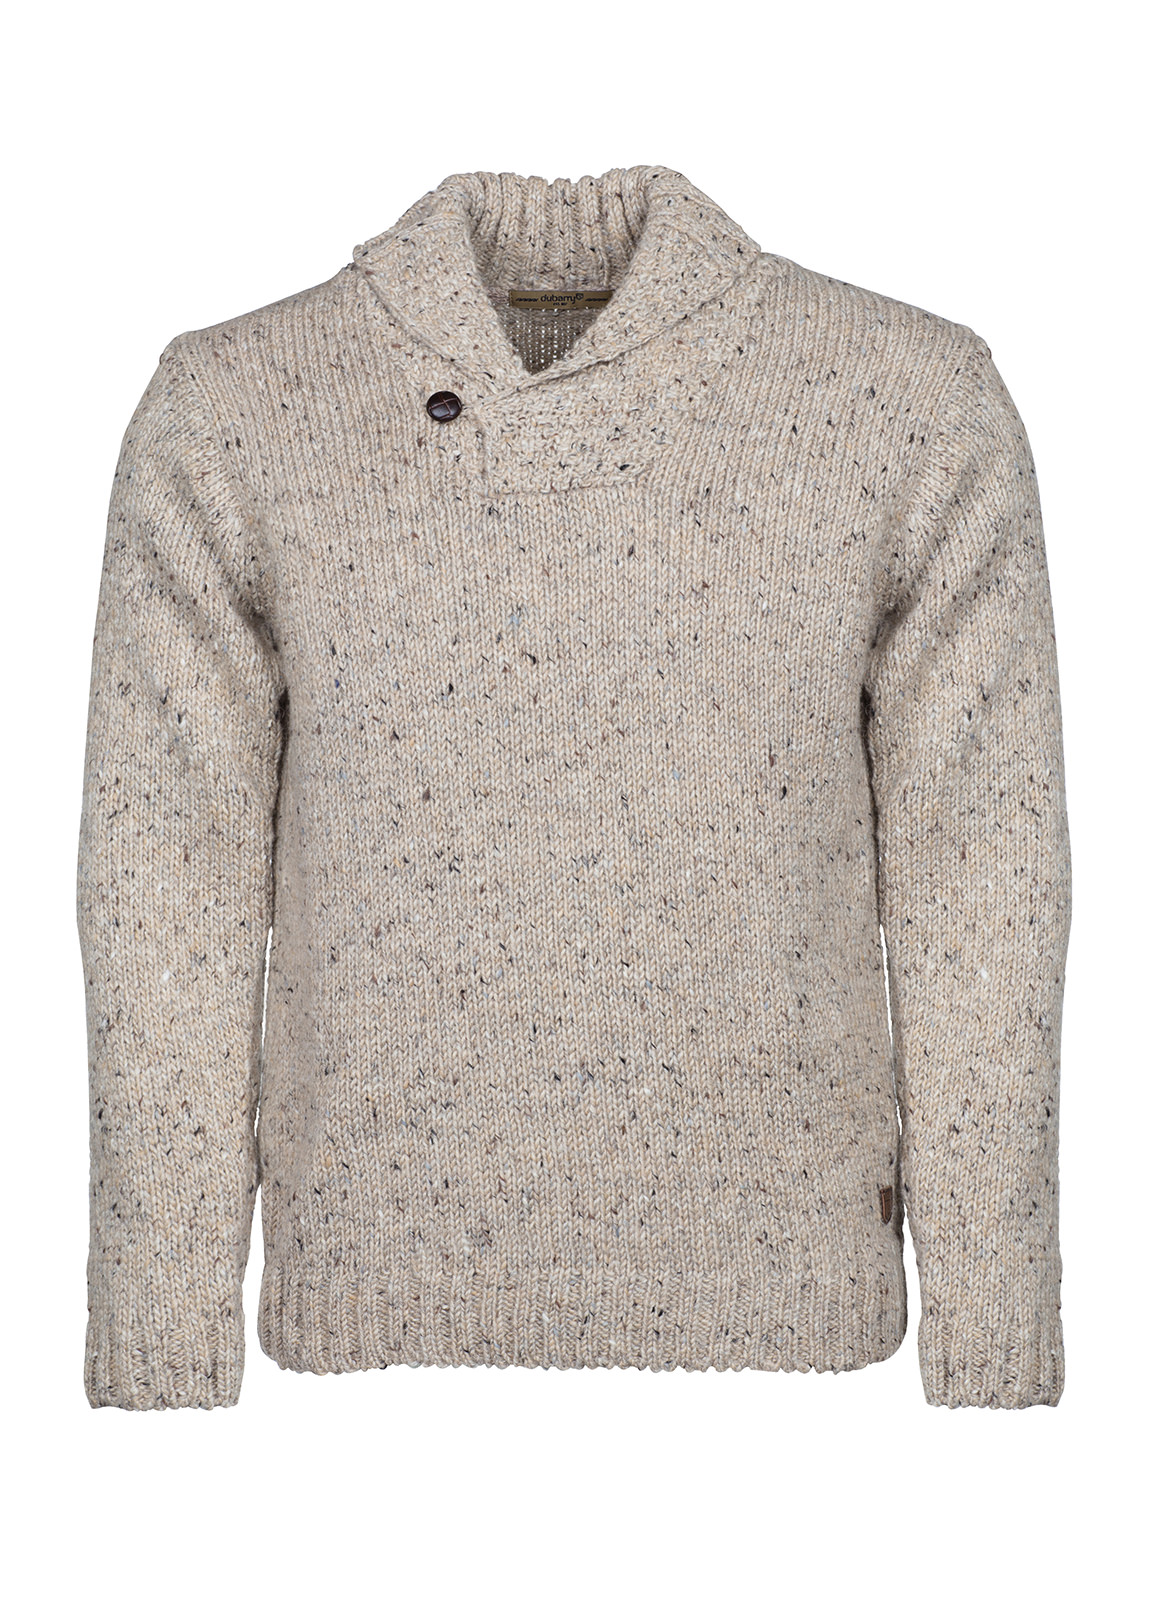 Dubarry_ Moriarty sweater - Oatmeal_Image_2